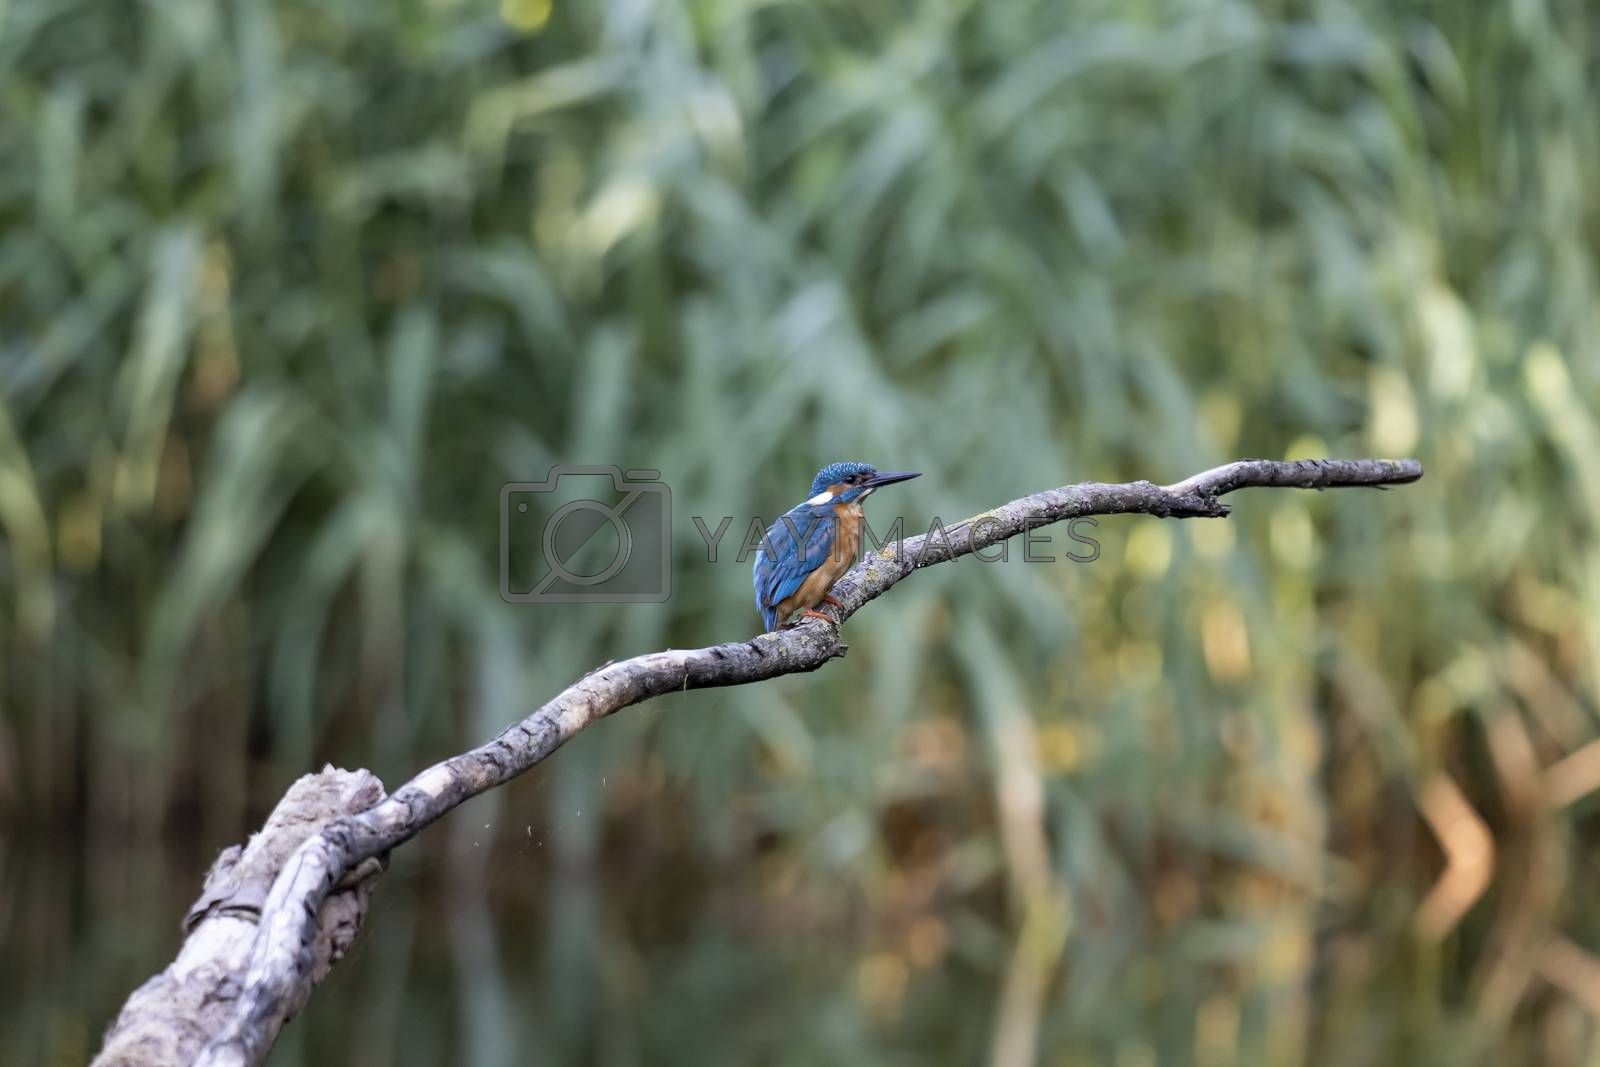 Common kingfisher, Alcedo atthis. The bird sitting on a branch above the water while waiting for fish. With copy-space.